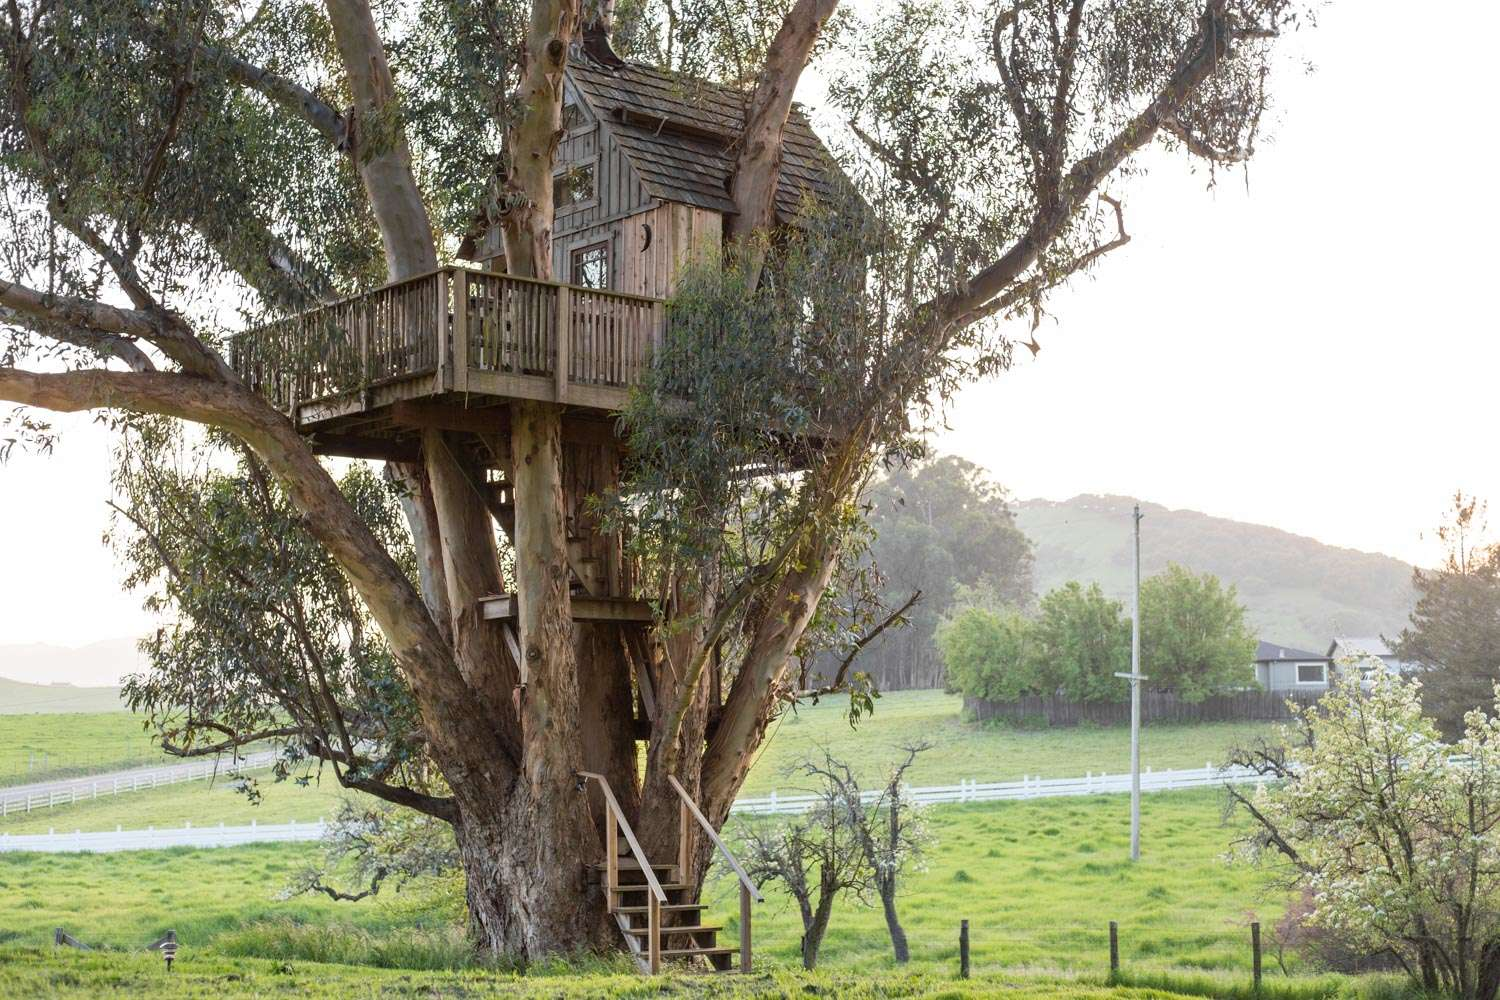 Treehouse treehouse at swallowtail studio, magical, romantic treehouse, ca